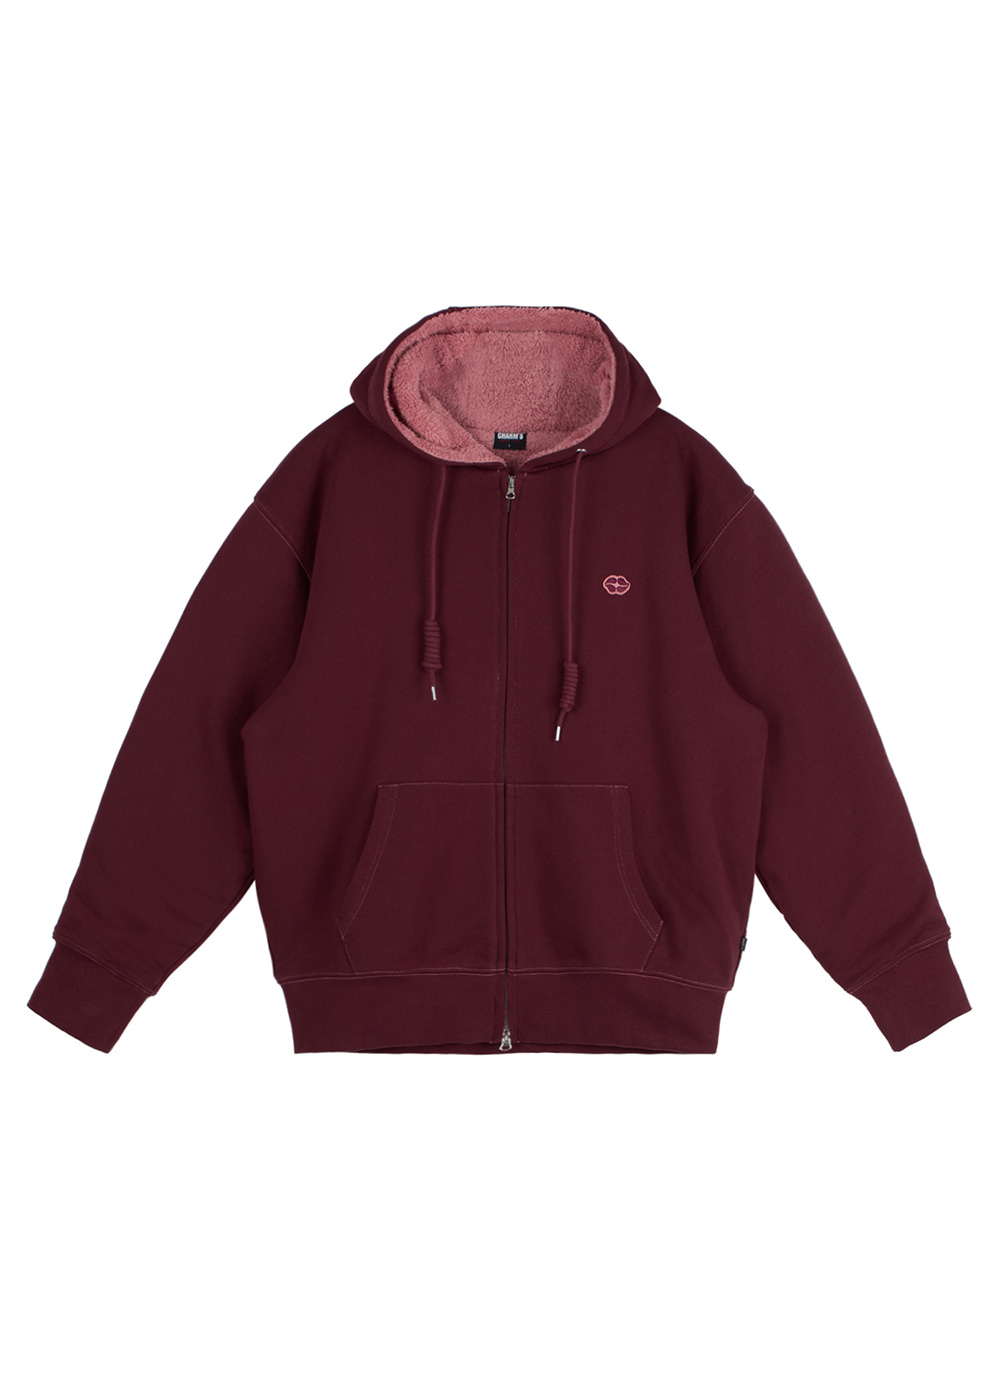 CHARMS HEART LIP ZIP UP HOODIE BG